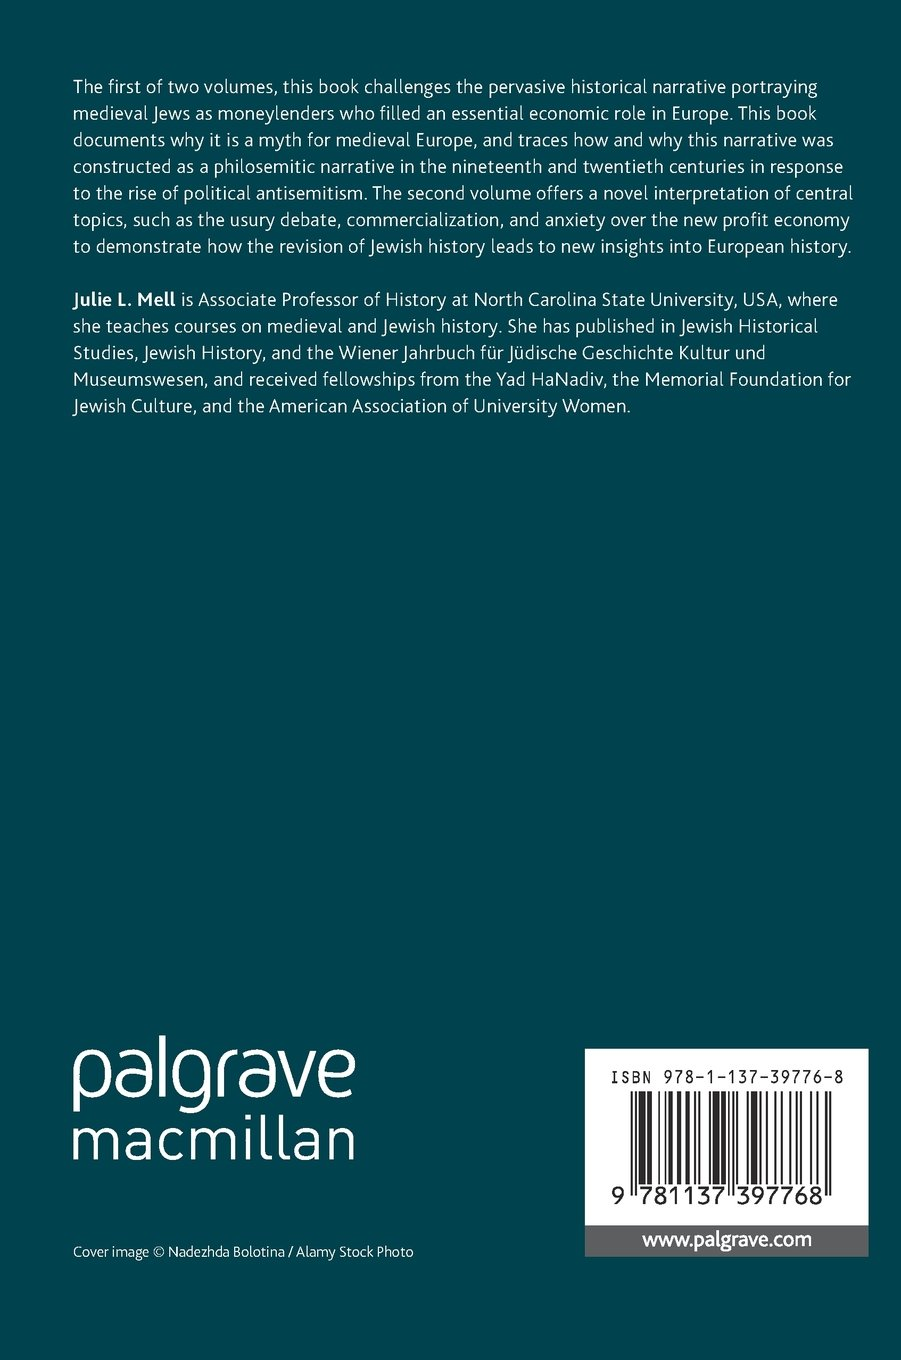 The Myth of the Medieval Jewish Moneylender: Volume I (Palgrave Studies in Cultural and Intellectual History)